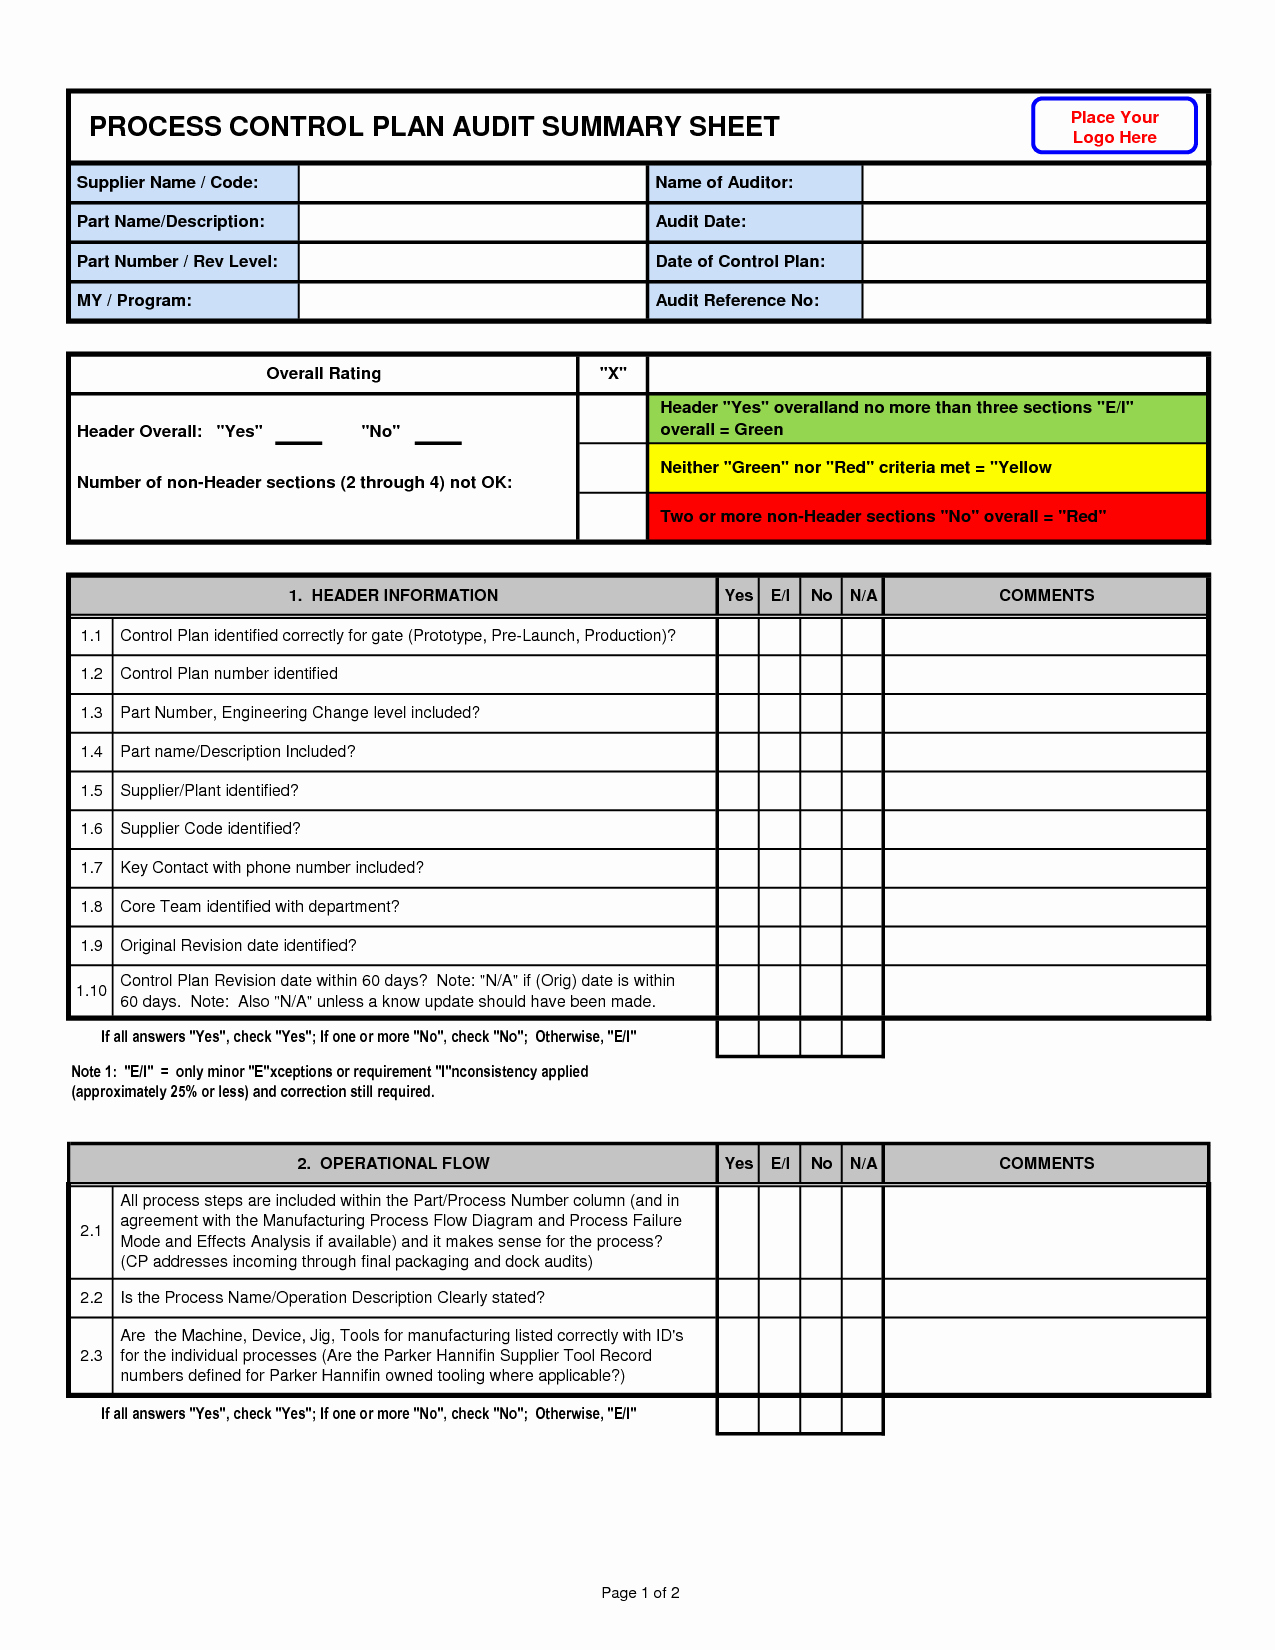 Process Audit Template Luxury Awesome Process Control Plan Audit Summary Sheet Template